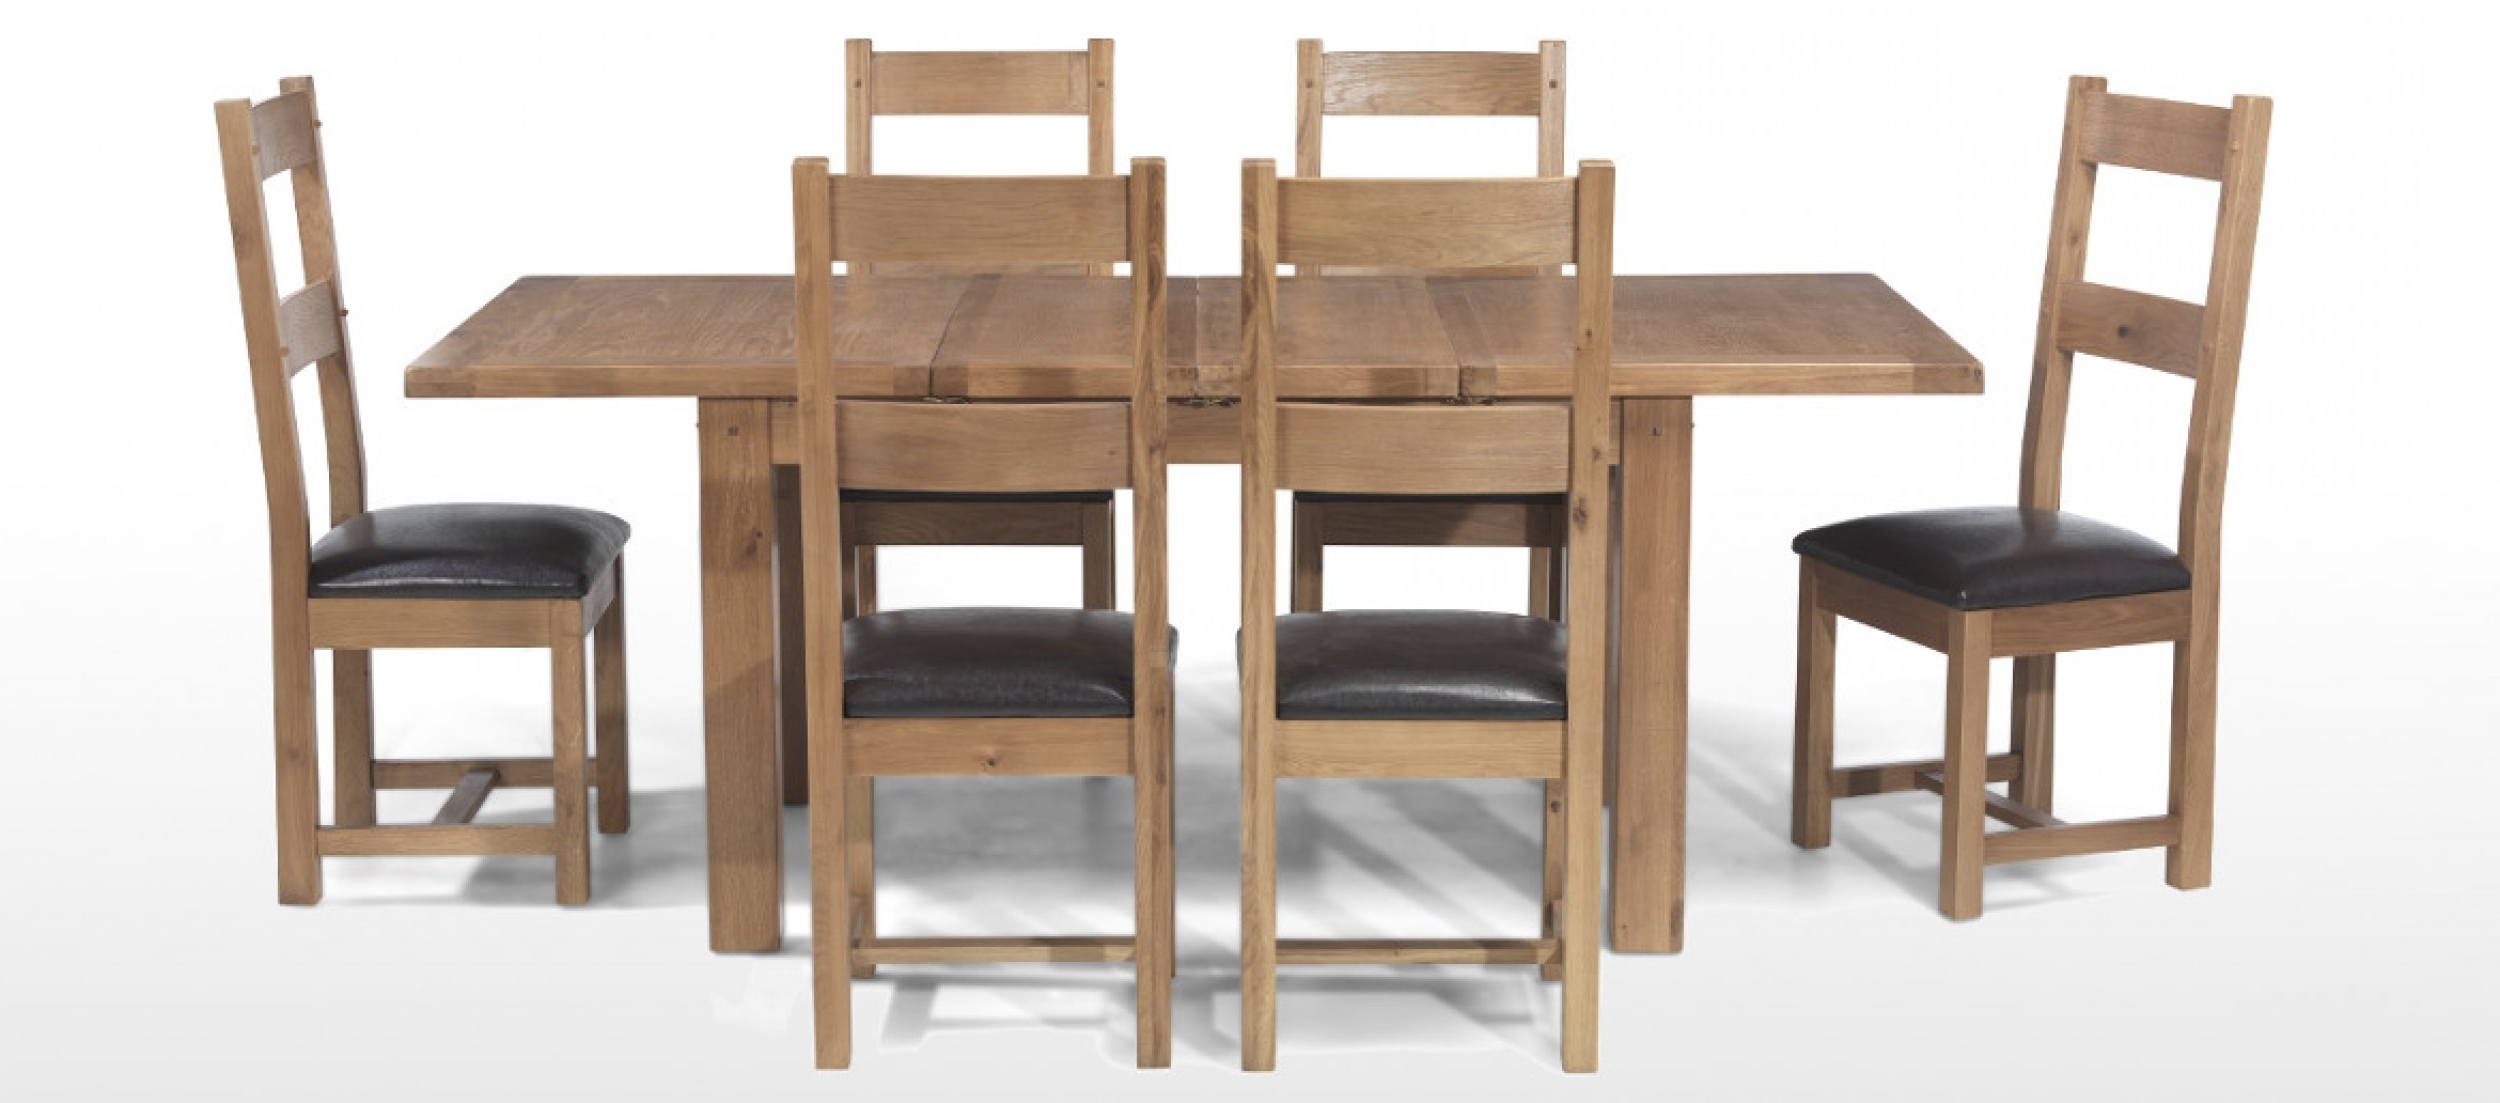 Quercus Pertaining To Extending Dining Tables 6 Chairs (View 2 of 25)